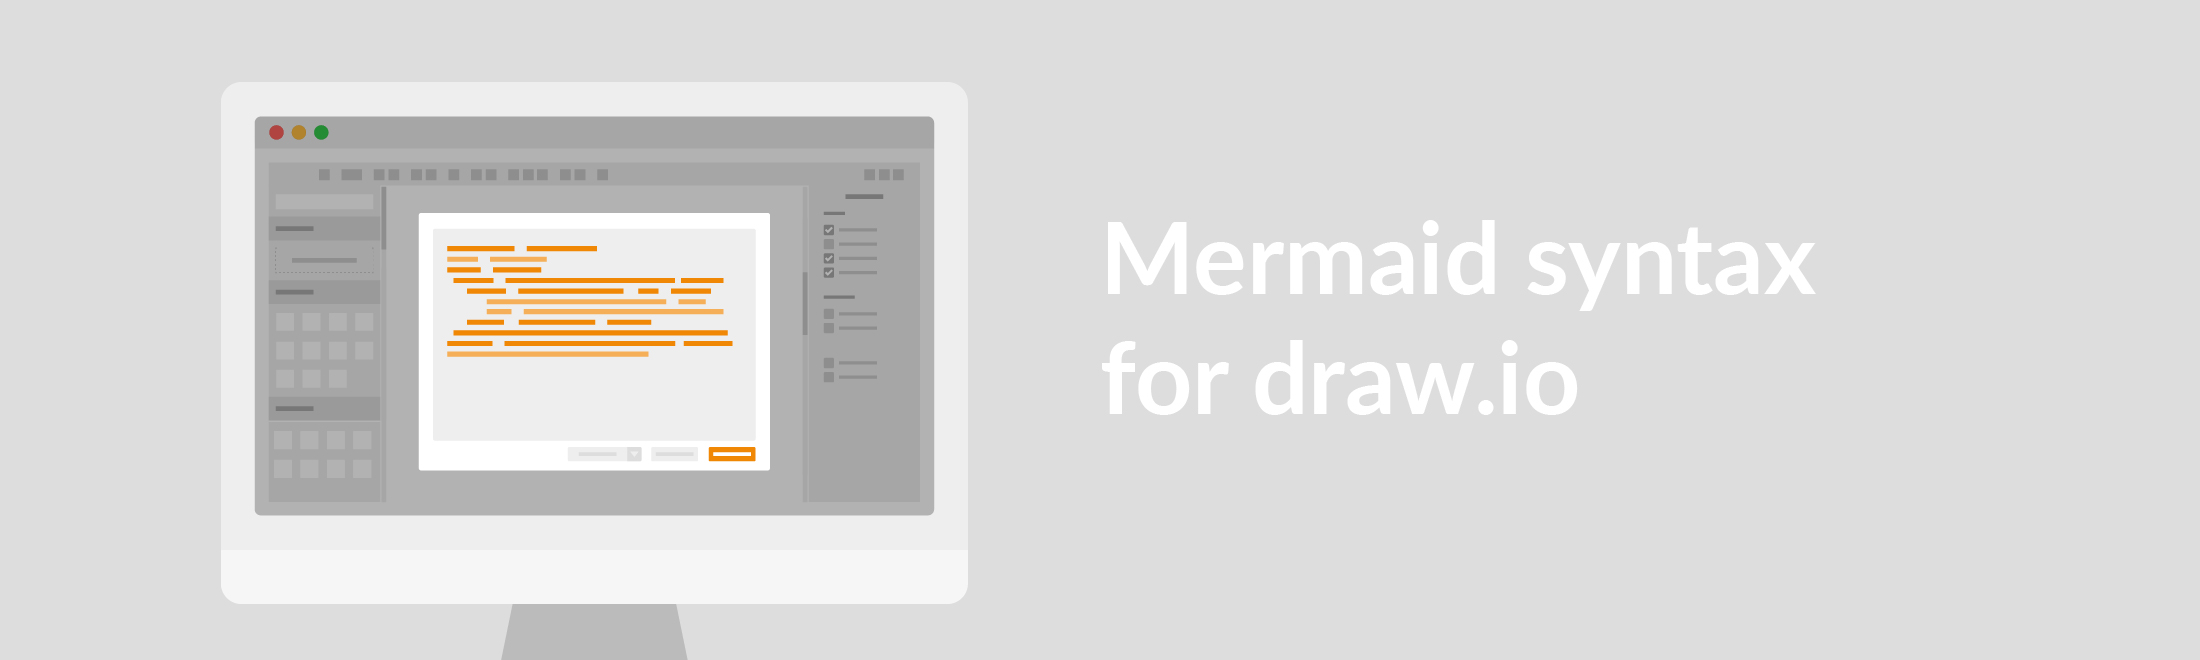 Mermaid syntax for draw.io